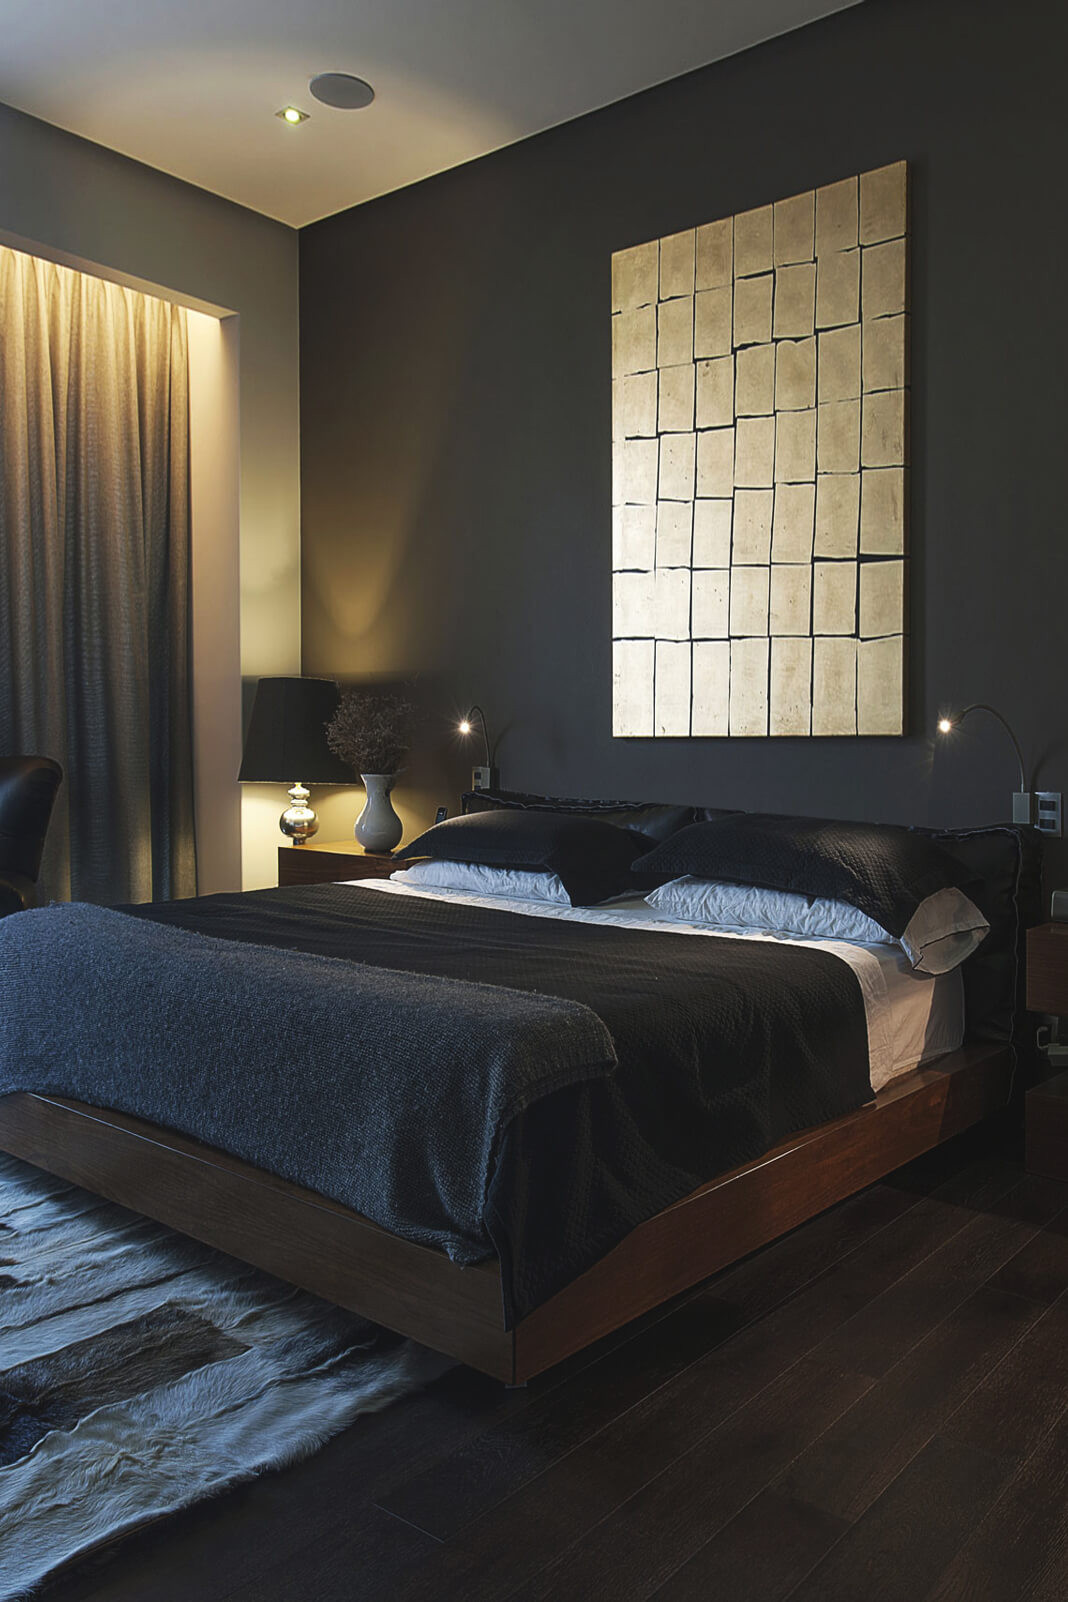 Alluring Bedroom Designs Dark Wall 10 Chambres Inspirantes Aux tonalités Masculines Frenchy